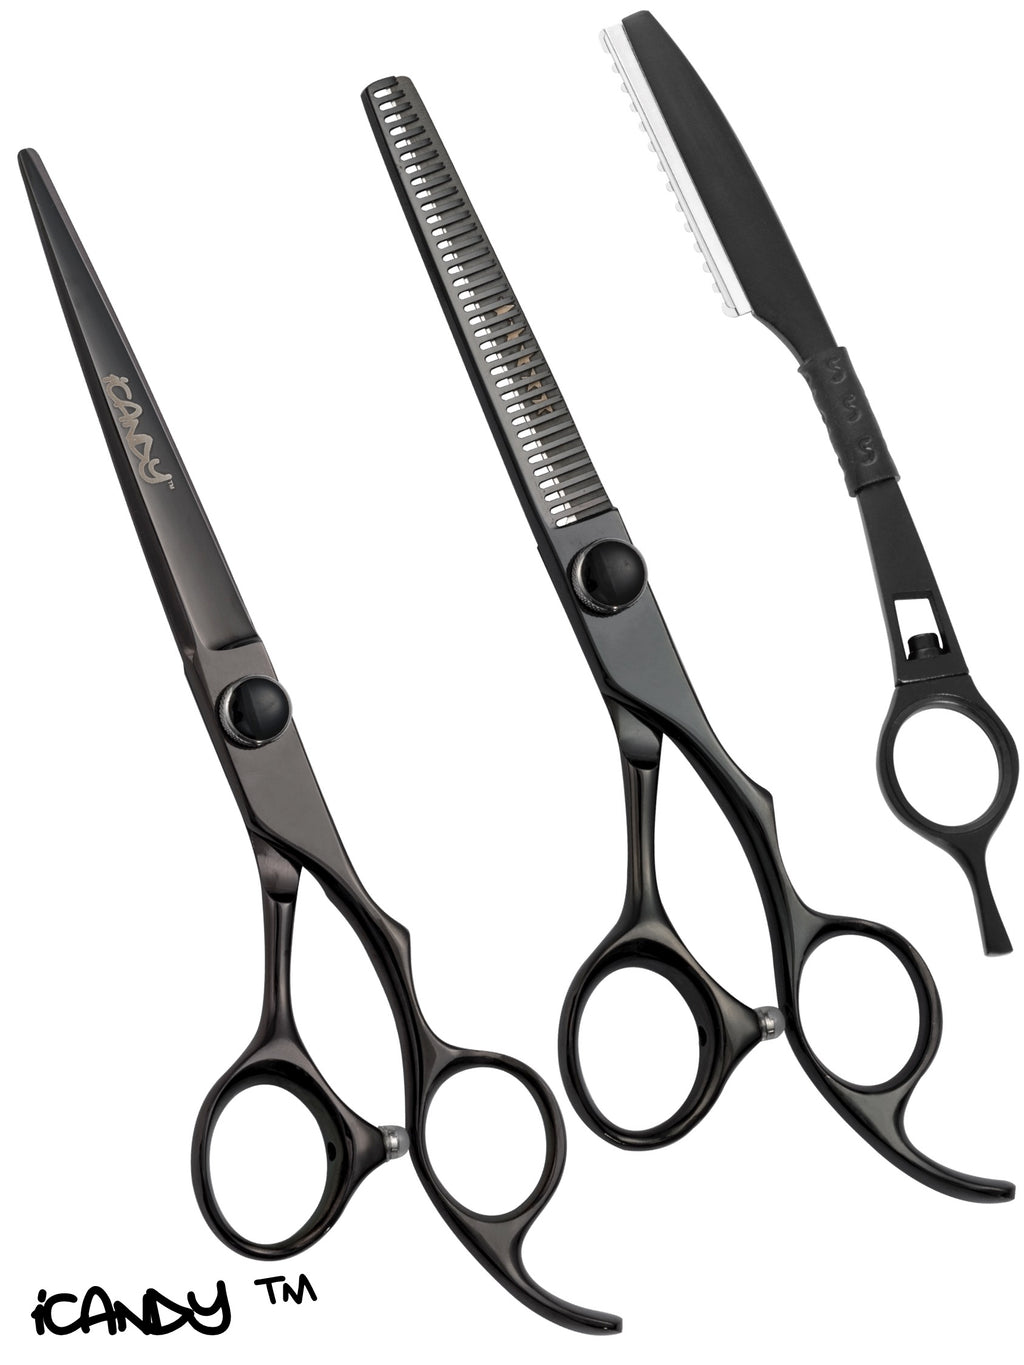 iCandy Elite Midnight Black Scissor & Thinner Bundle (6.5/6.0 inch)